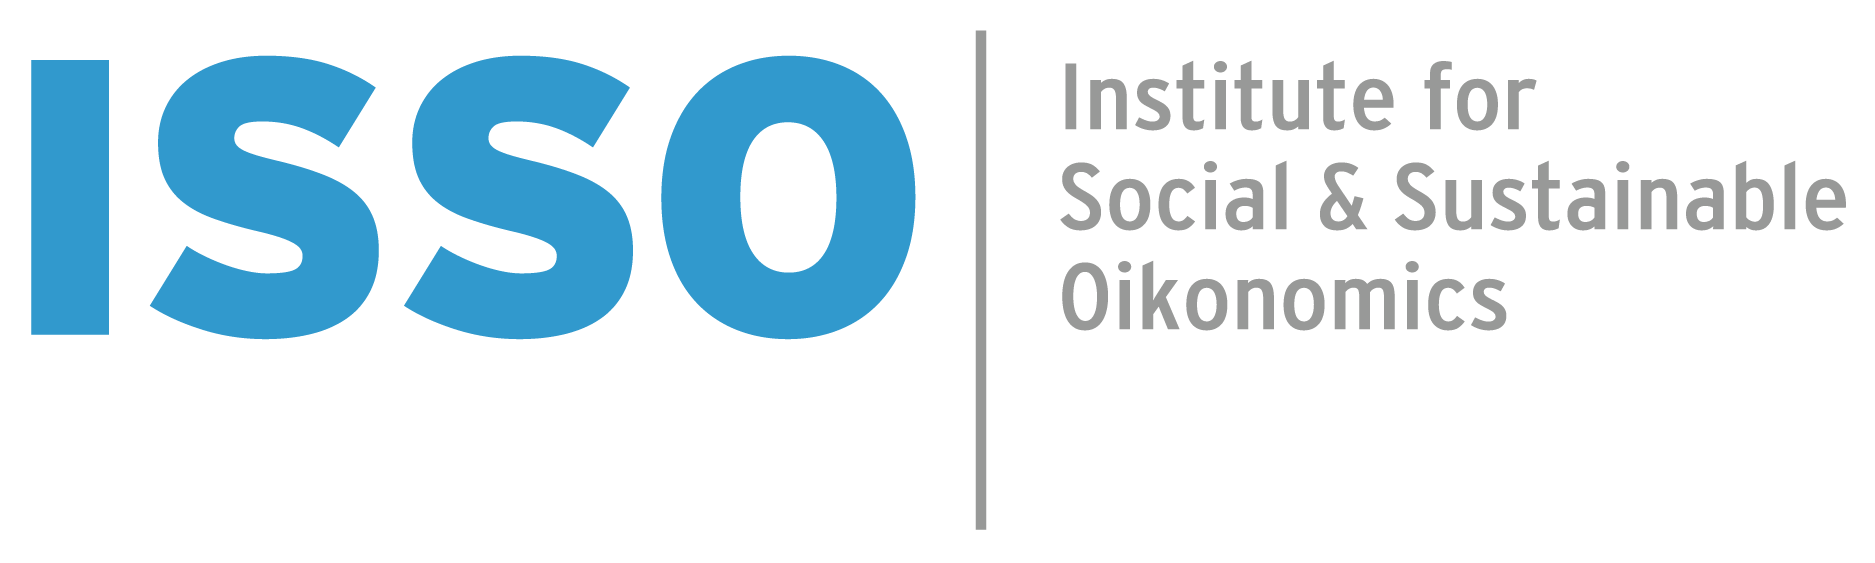 Institute for Social and Sustainable Oikonomics